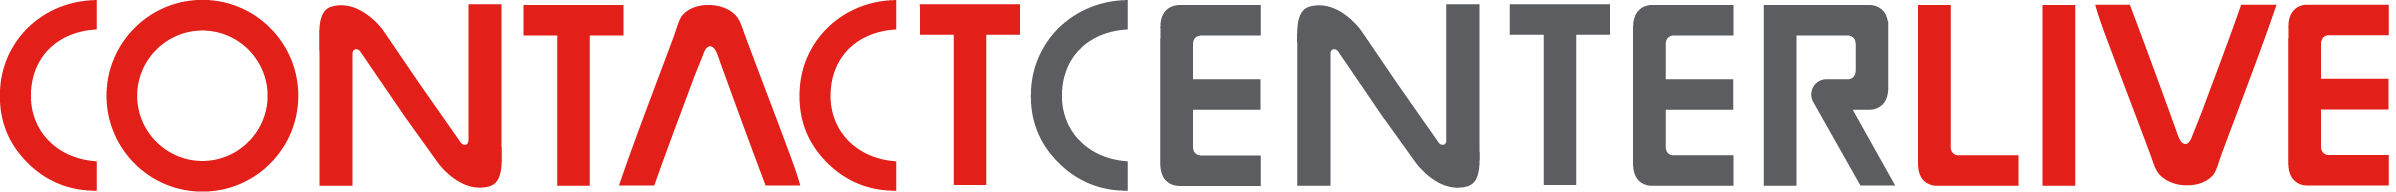 contactcenterlive  logo chatbot consulting partner